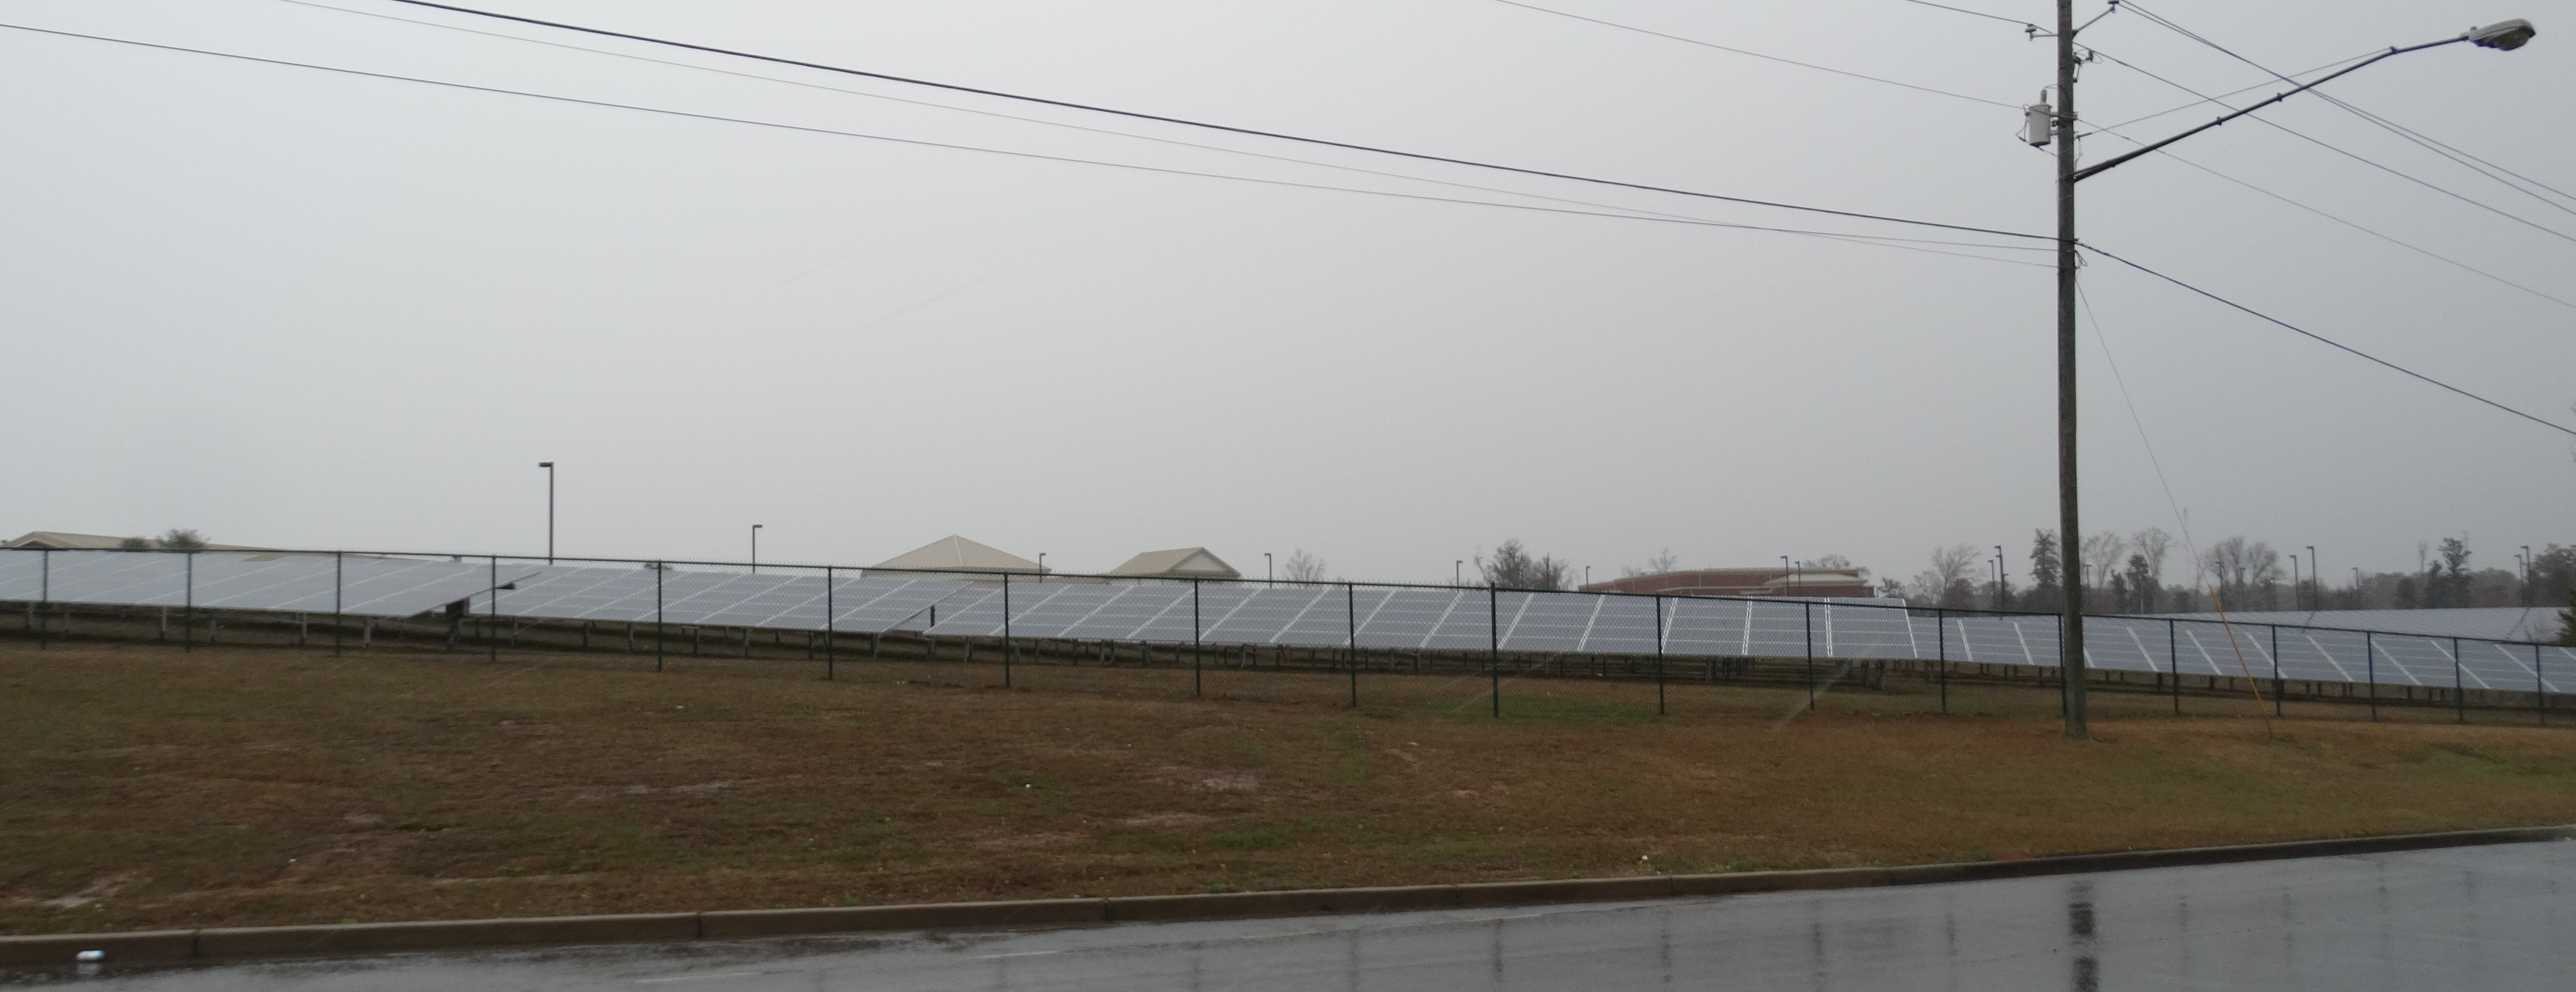 Solar panels are lined up in outside Dublin High School, where the groundbreaking ceremony took place two years ago this week for the 4,000-panel solar array on the high school campus.